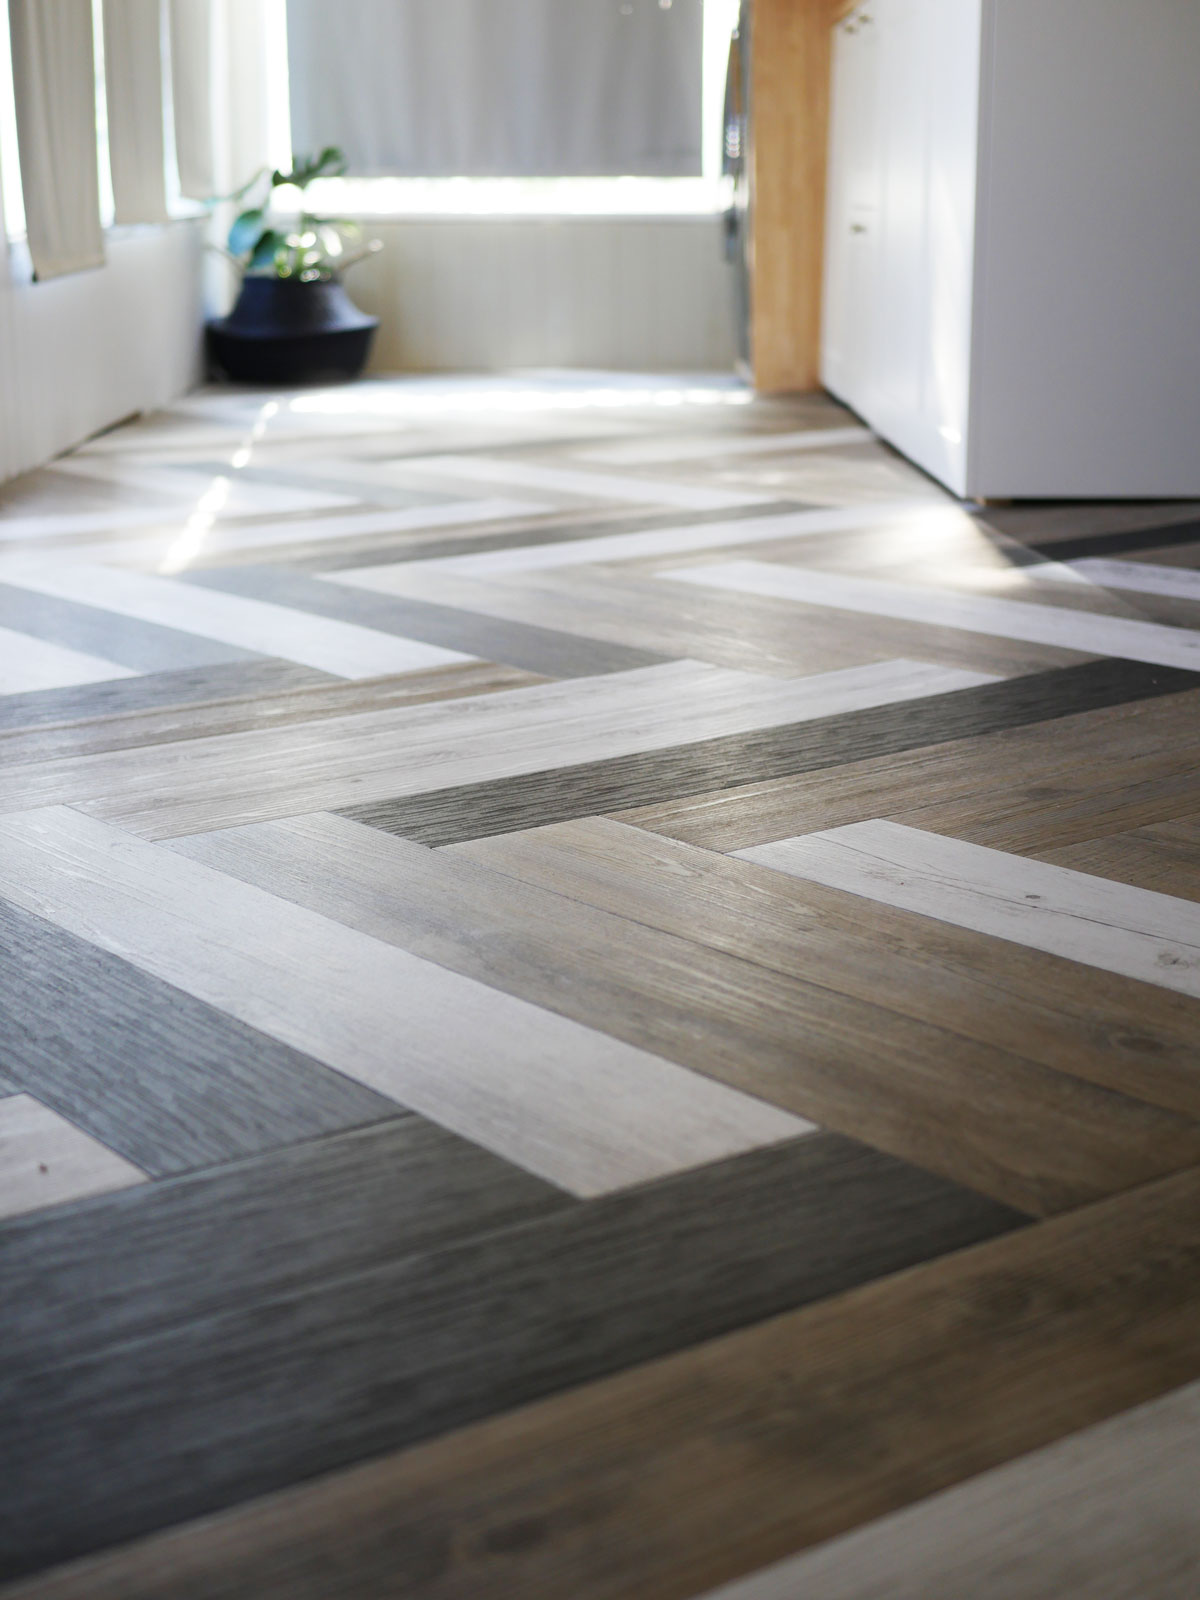 Herringbone Floors With Vinyl Stick Down Planks.